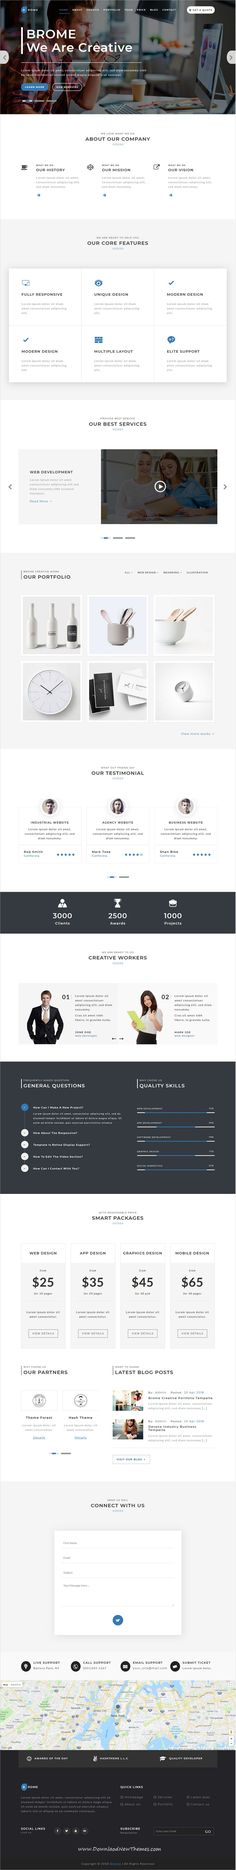 Brome is clean and modern design responsive #HTML5 bootstrap #template for digital #agency website with 9 unique homepage layouts to live preview & download click on image or Visit #websitedesign